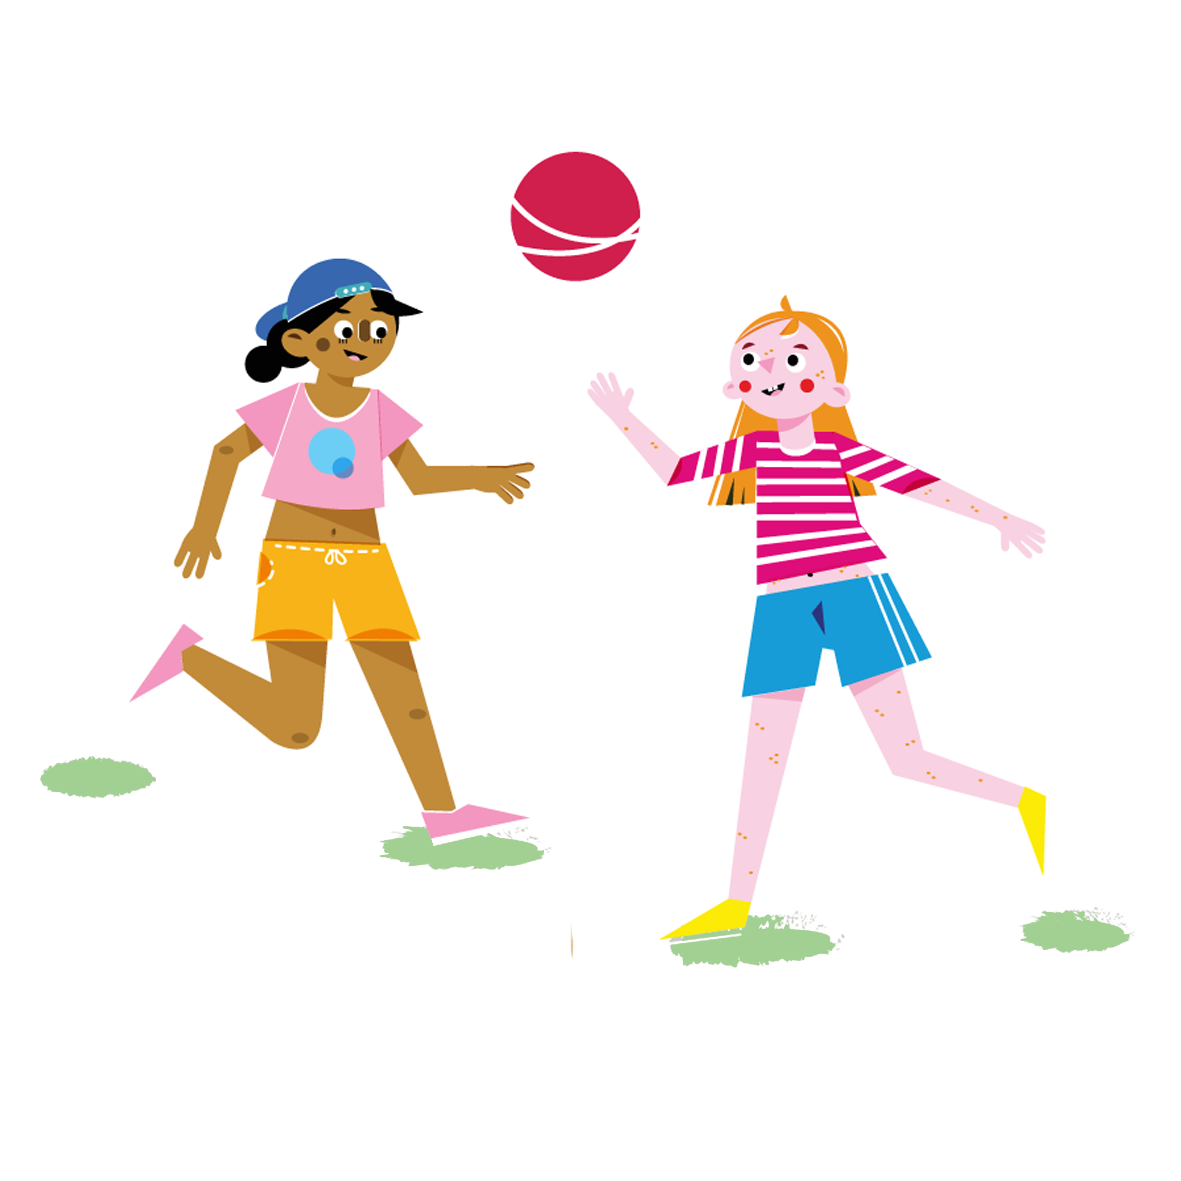 Girls playing - Vector Illustration © Emeline Barrea, All rights reserved